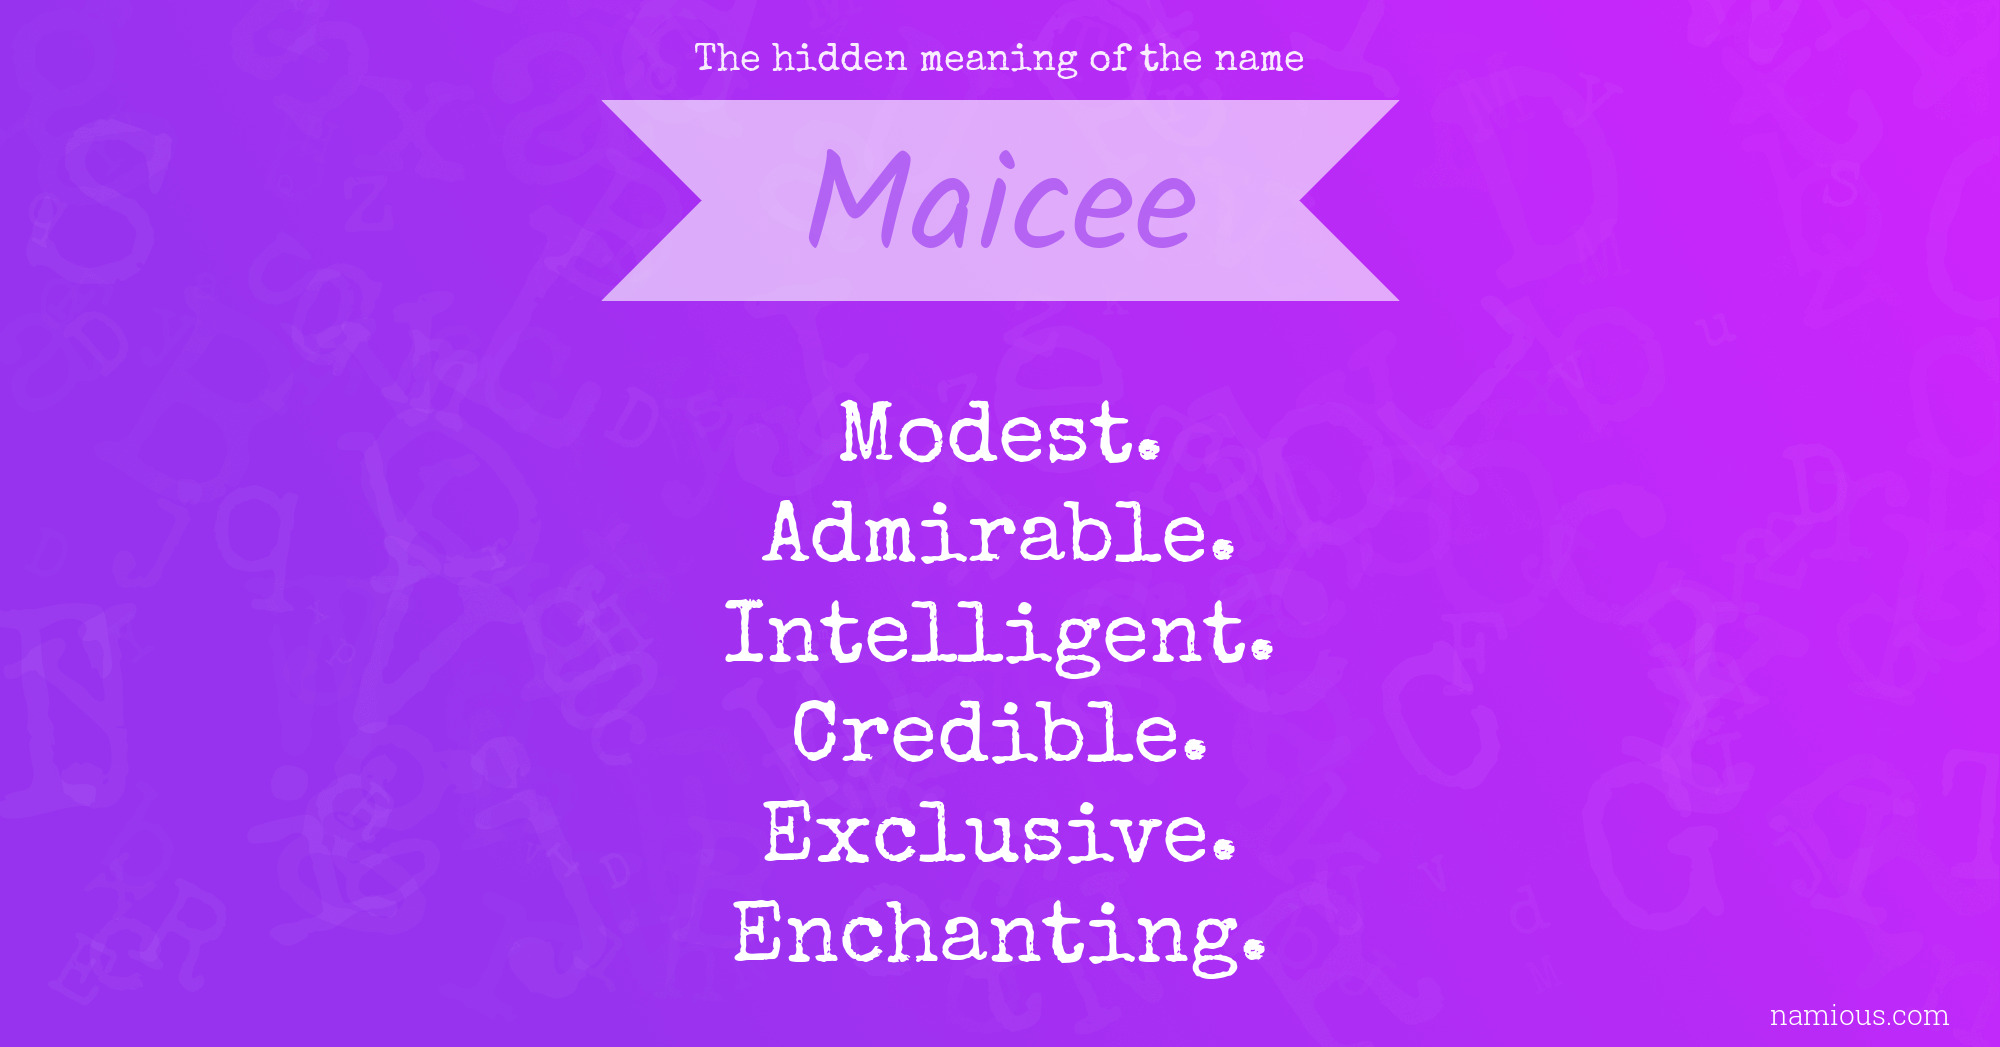 The hidden meaning of the name Maicee | Namious